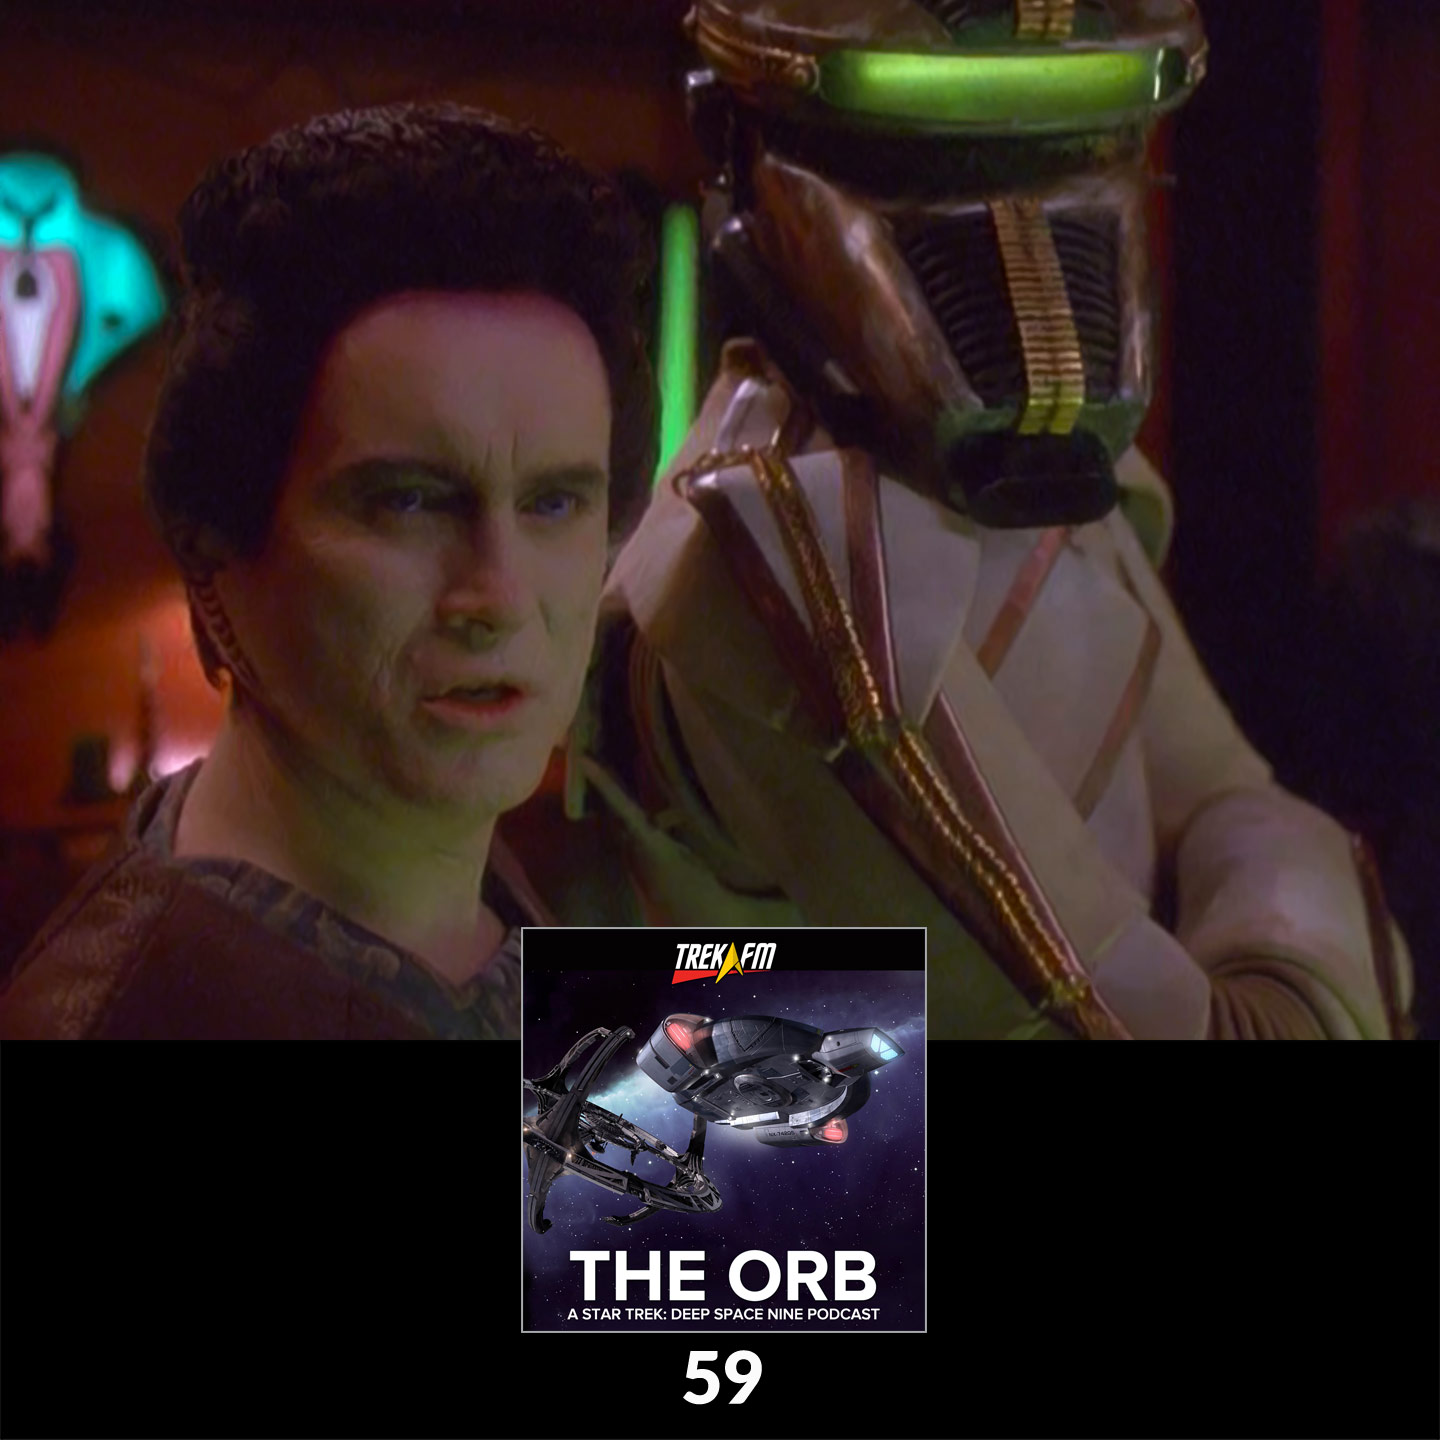 The Orb 59: Don't You Recognize the Face of Your Enemy?